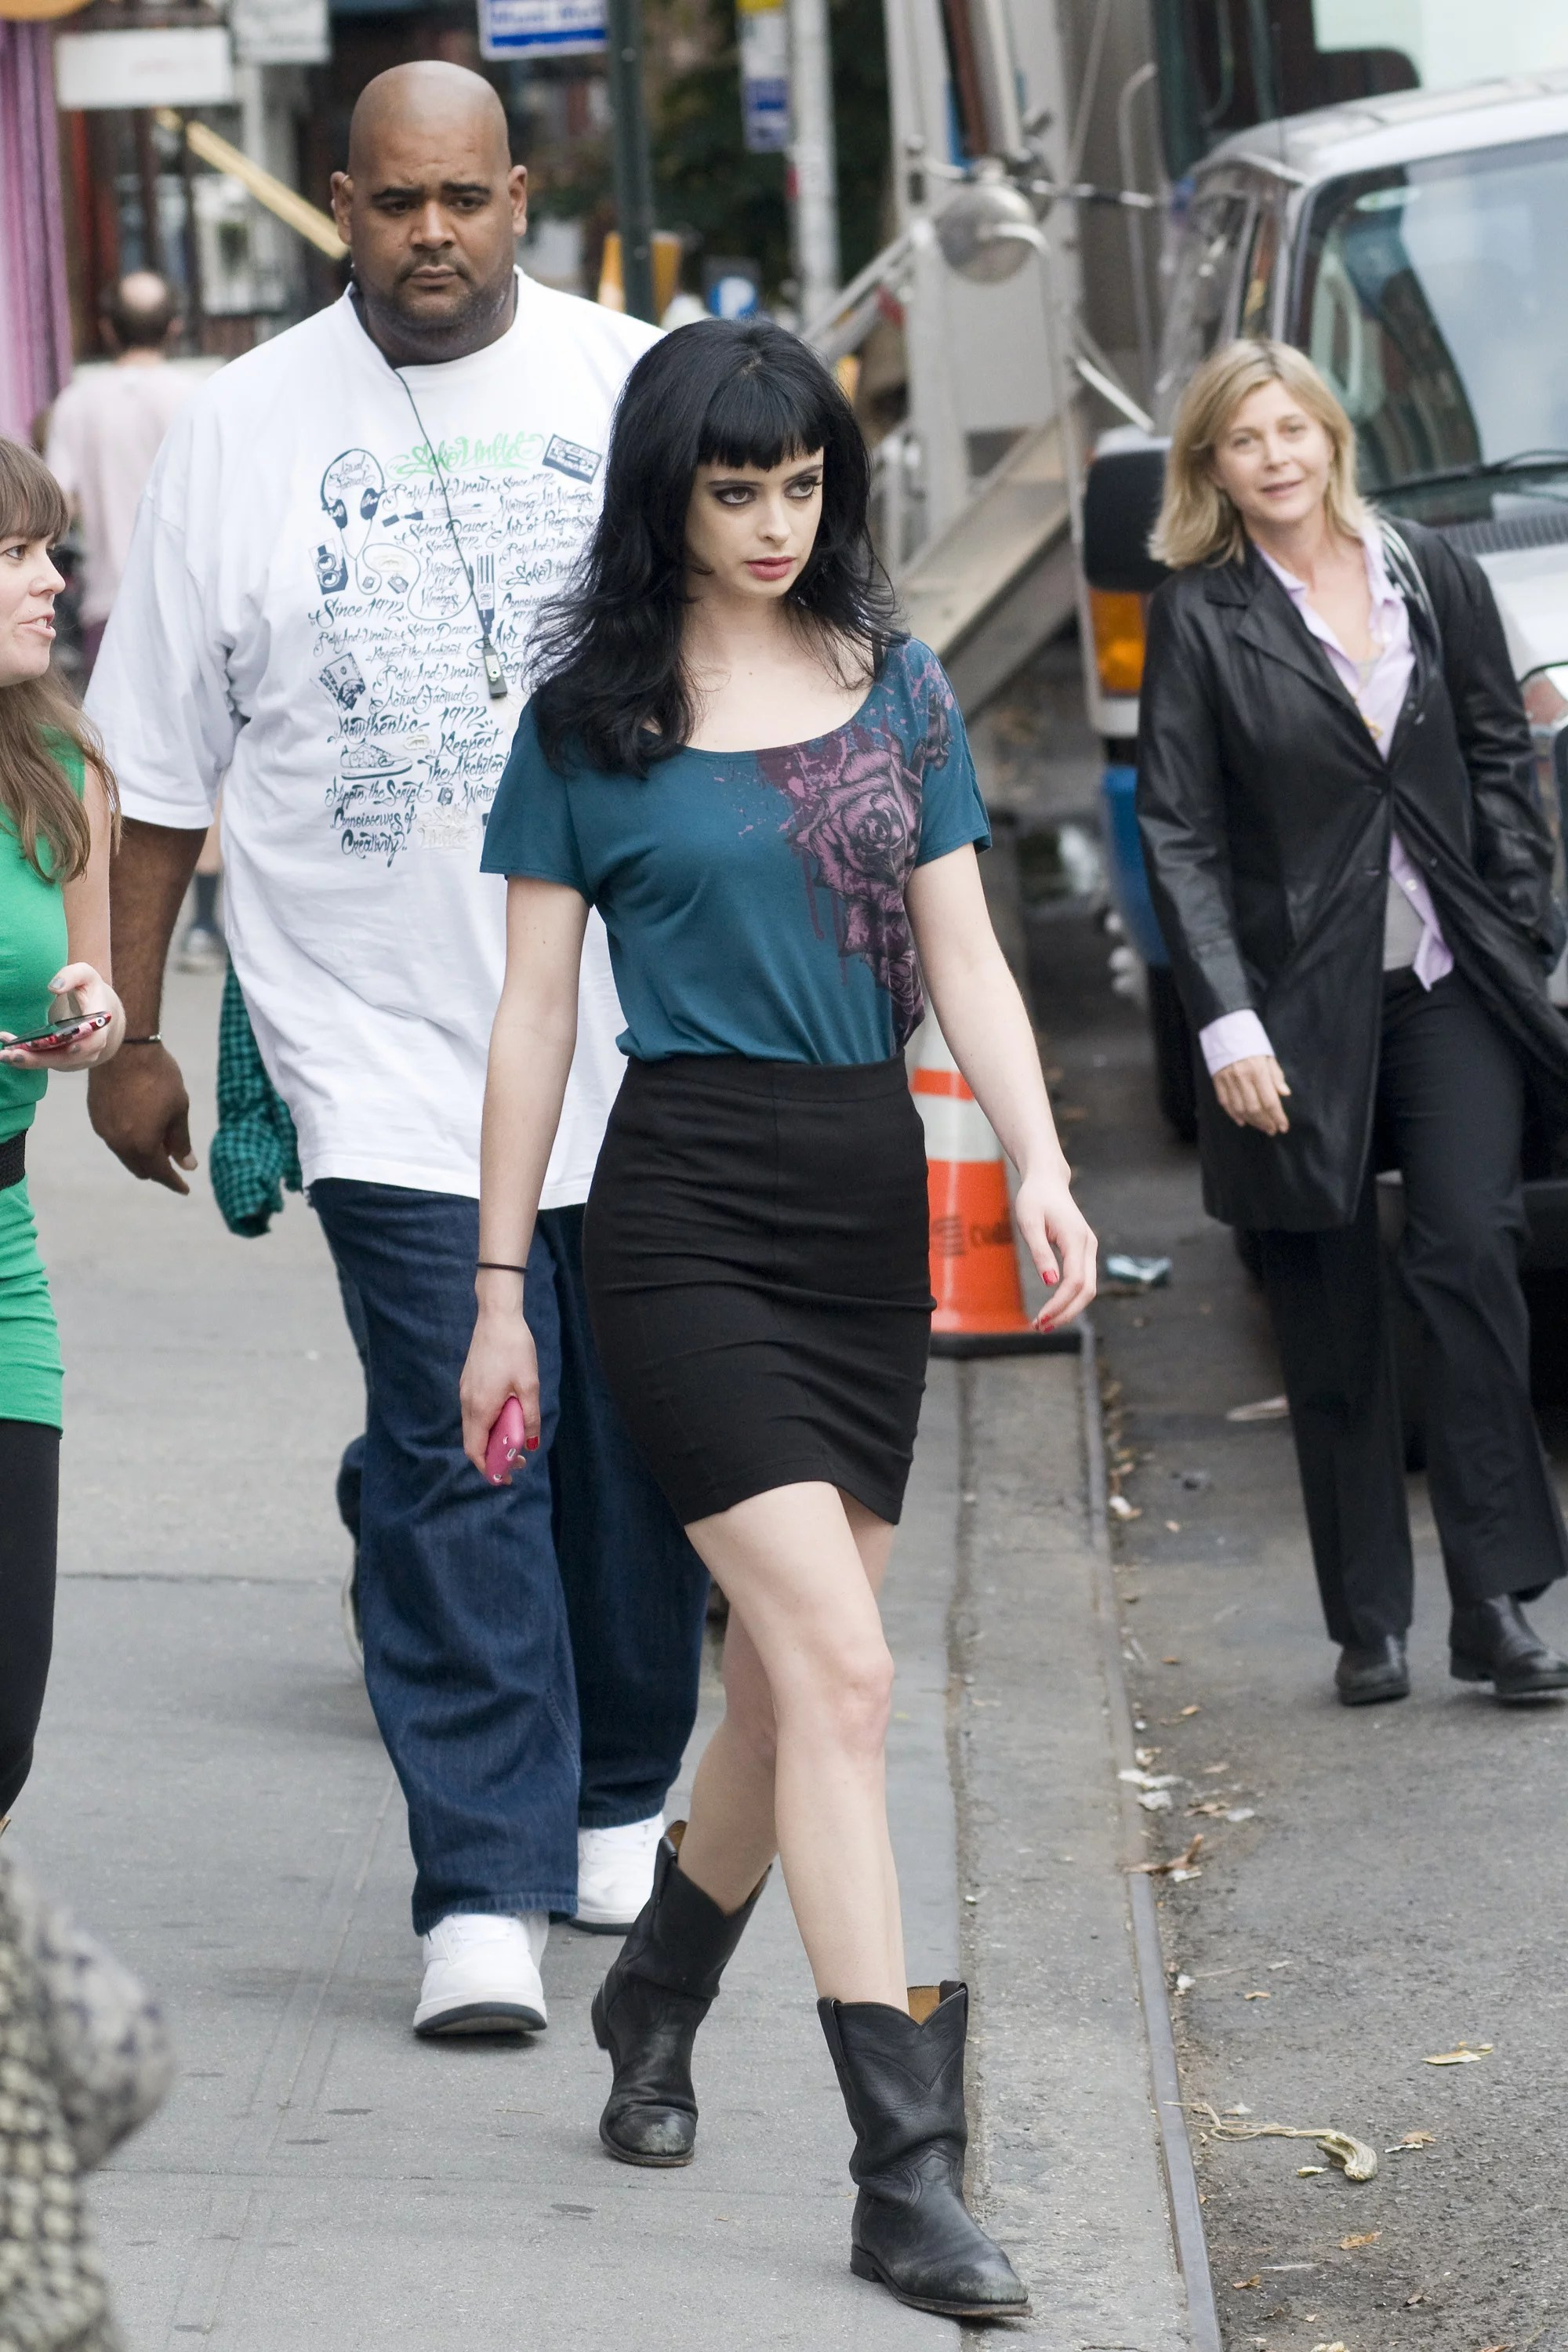 Breaking Bad Set Year Pictures Of Alicia Silverstone And Krysten Ritter On The